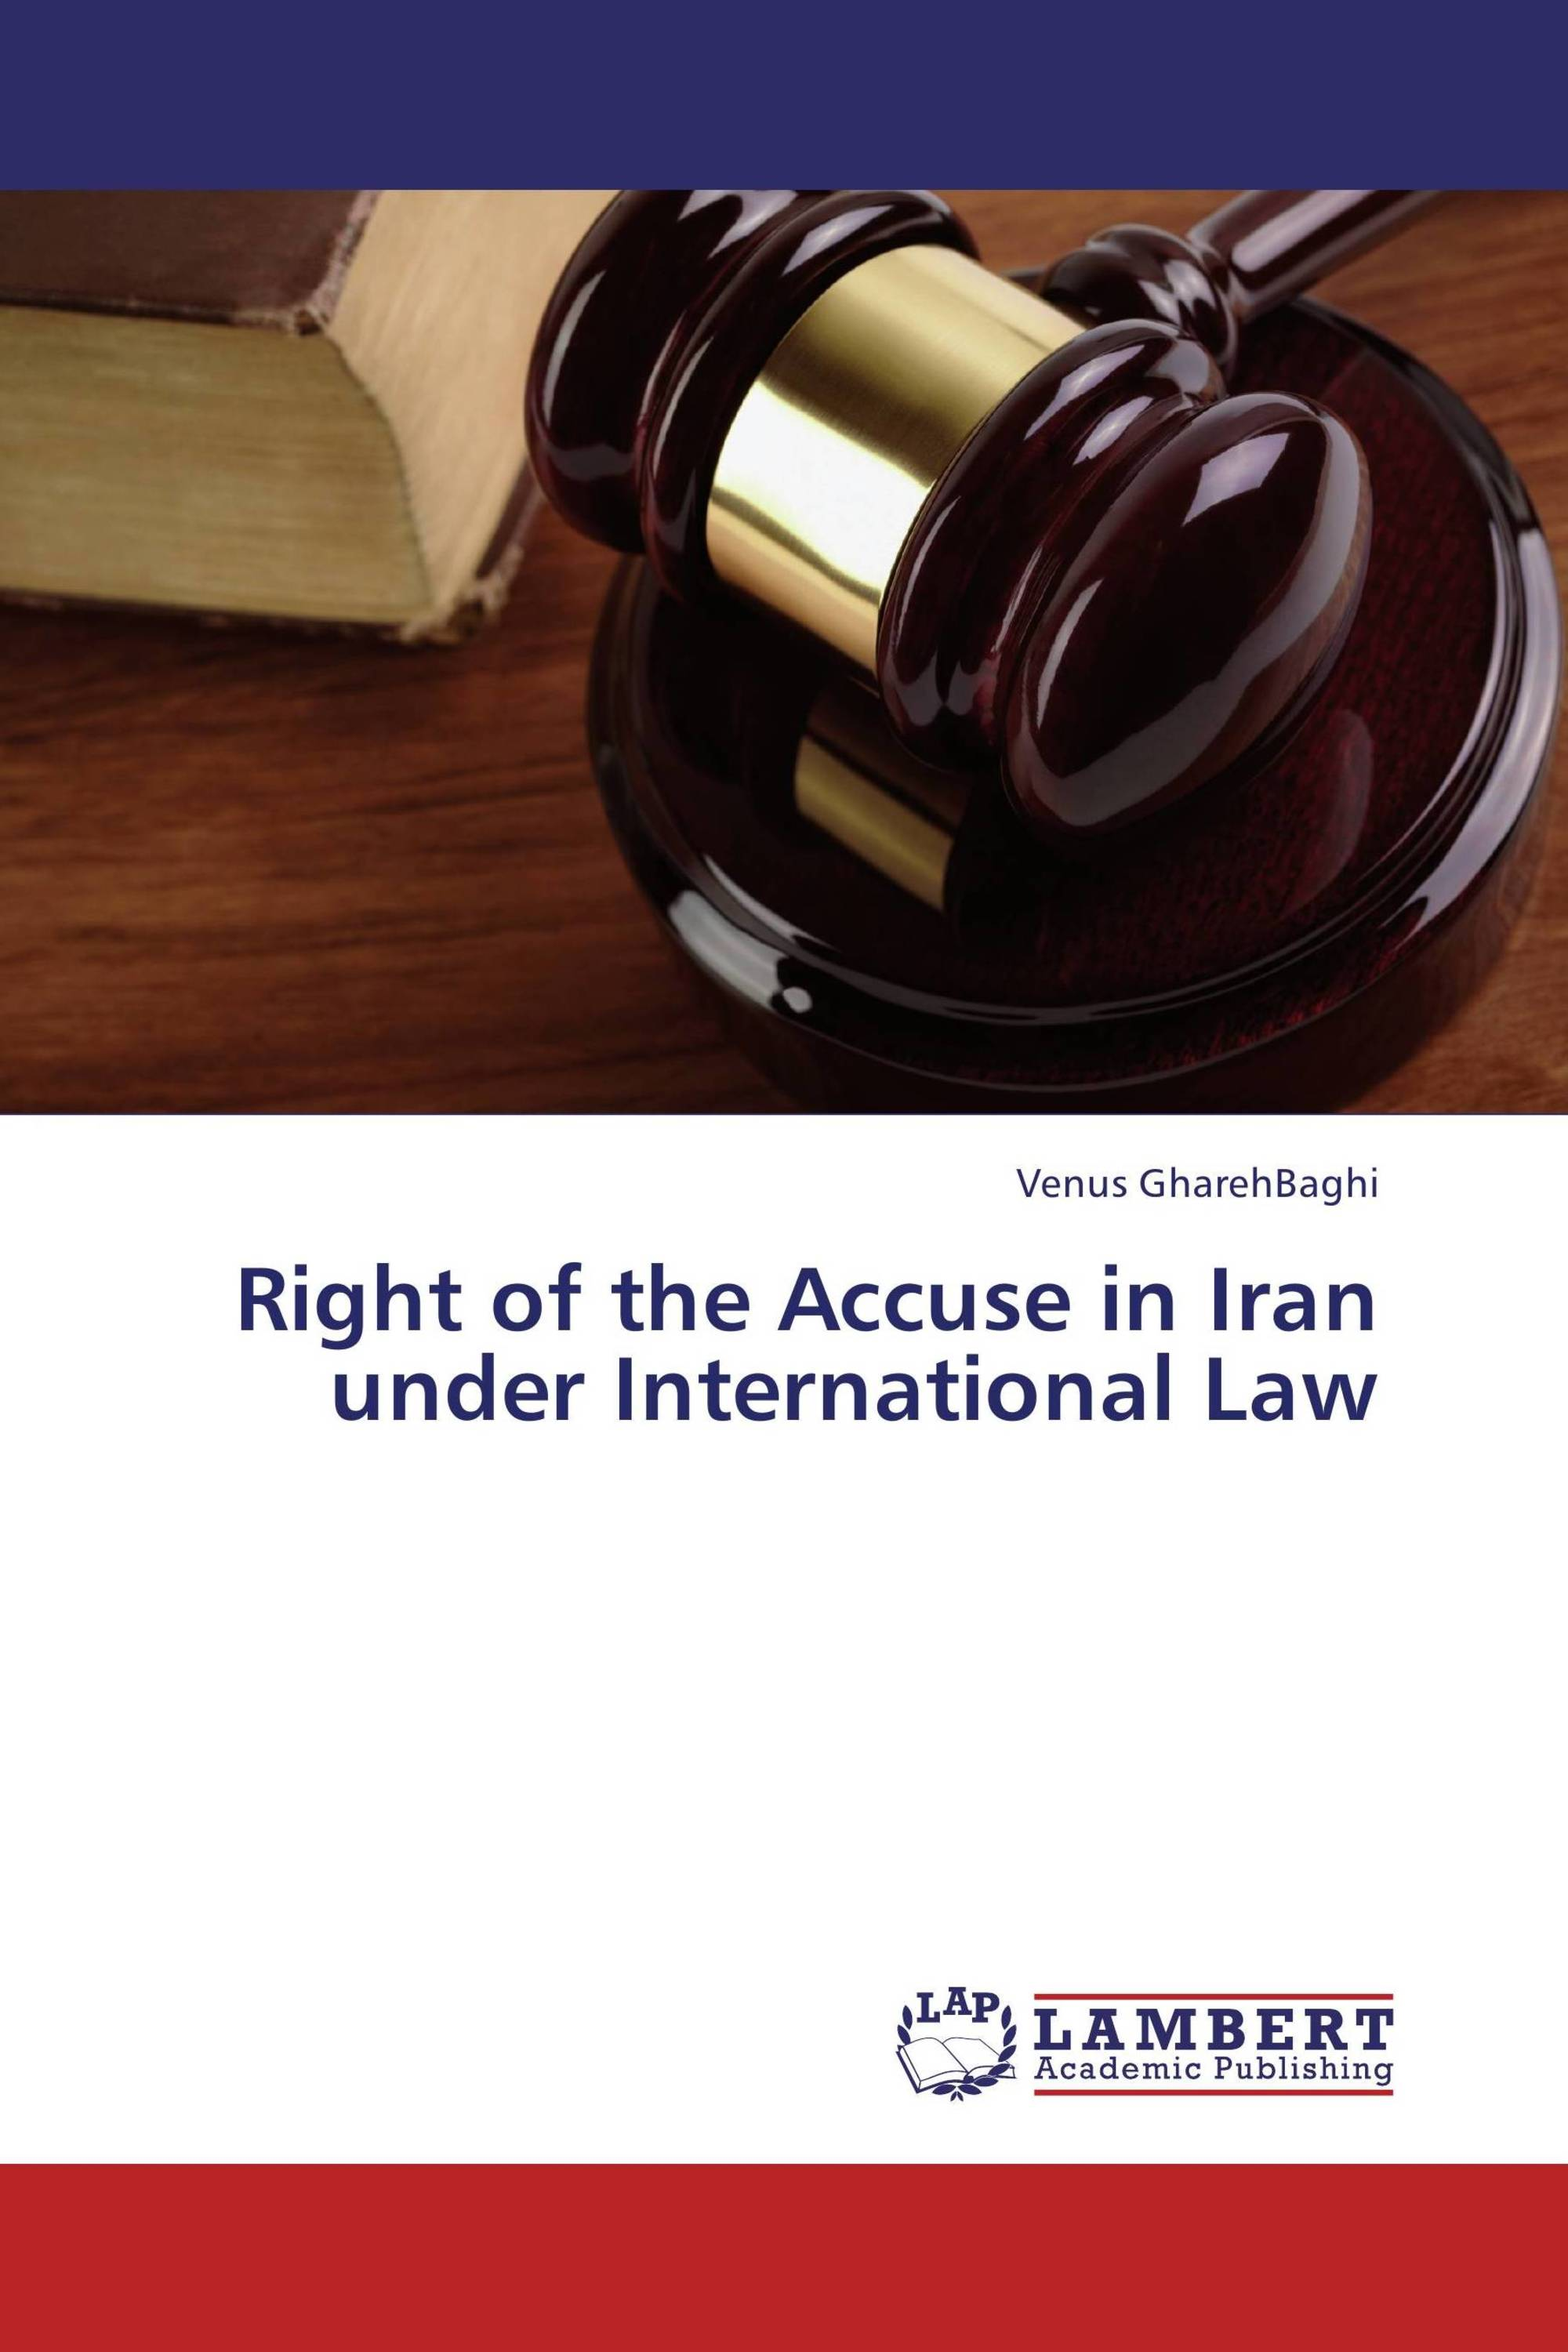 Right of the Accuse in Iran under International Law